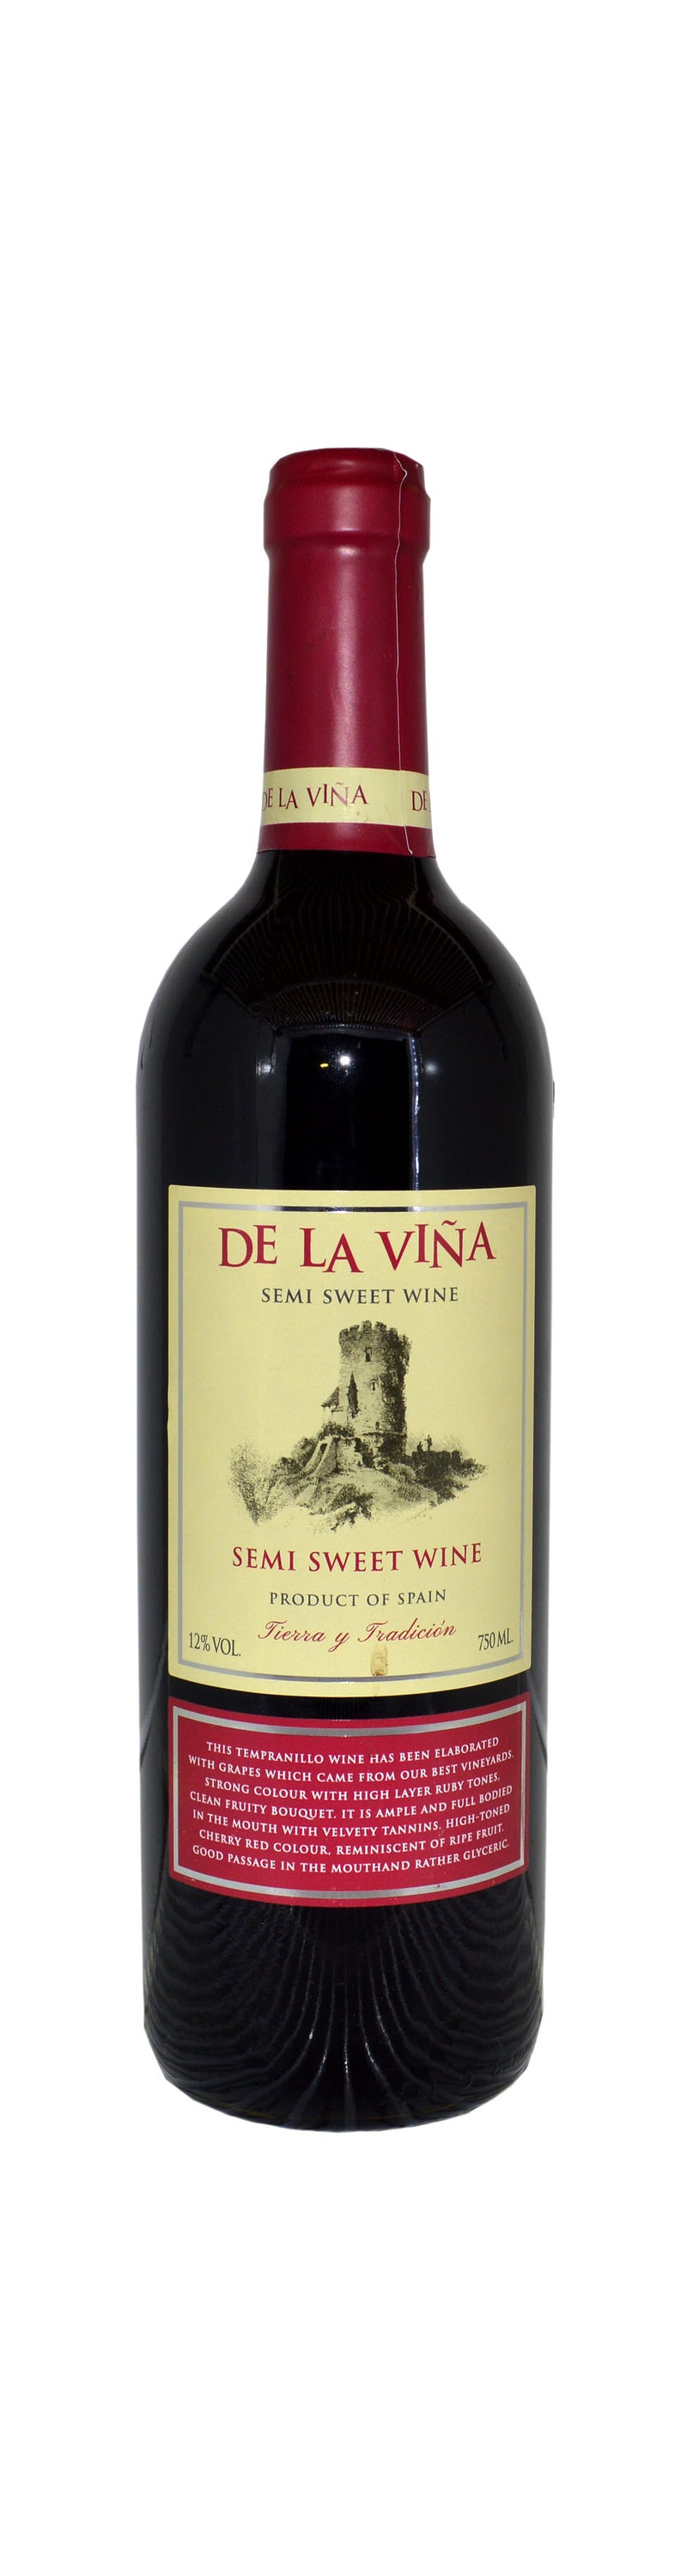 De La Vina Semi Sweet Wine 75cl